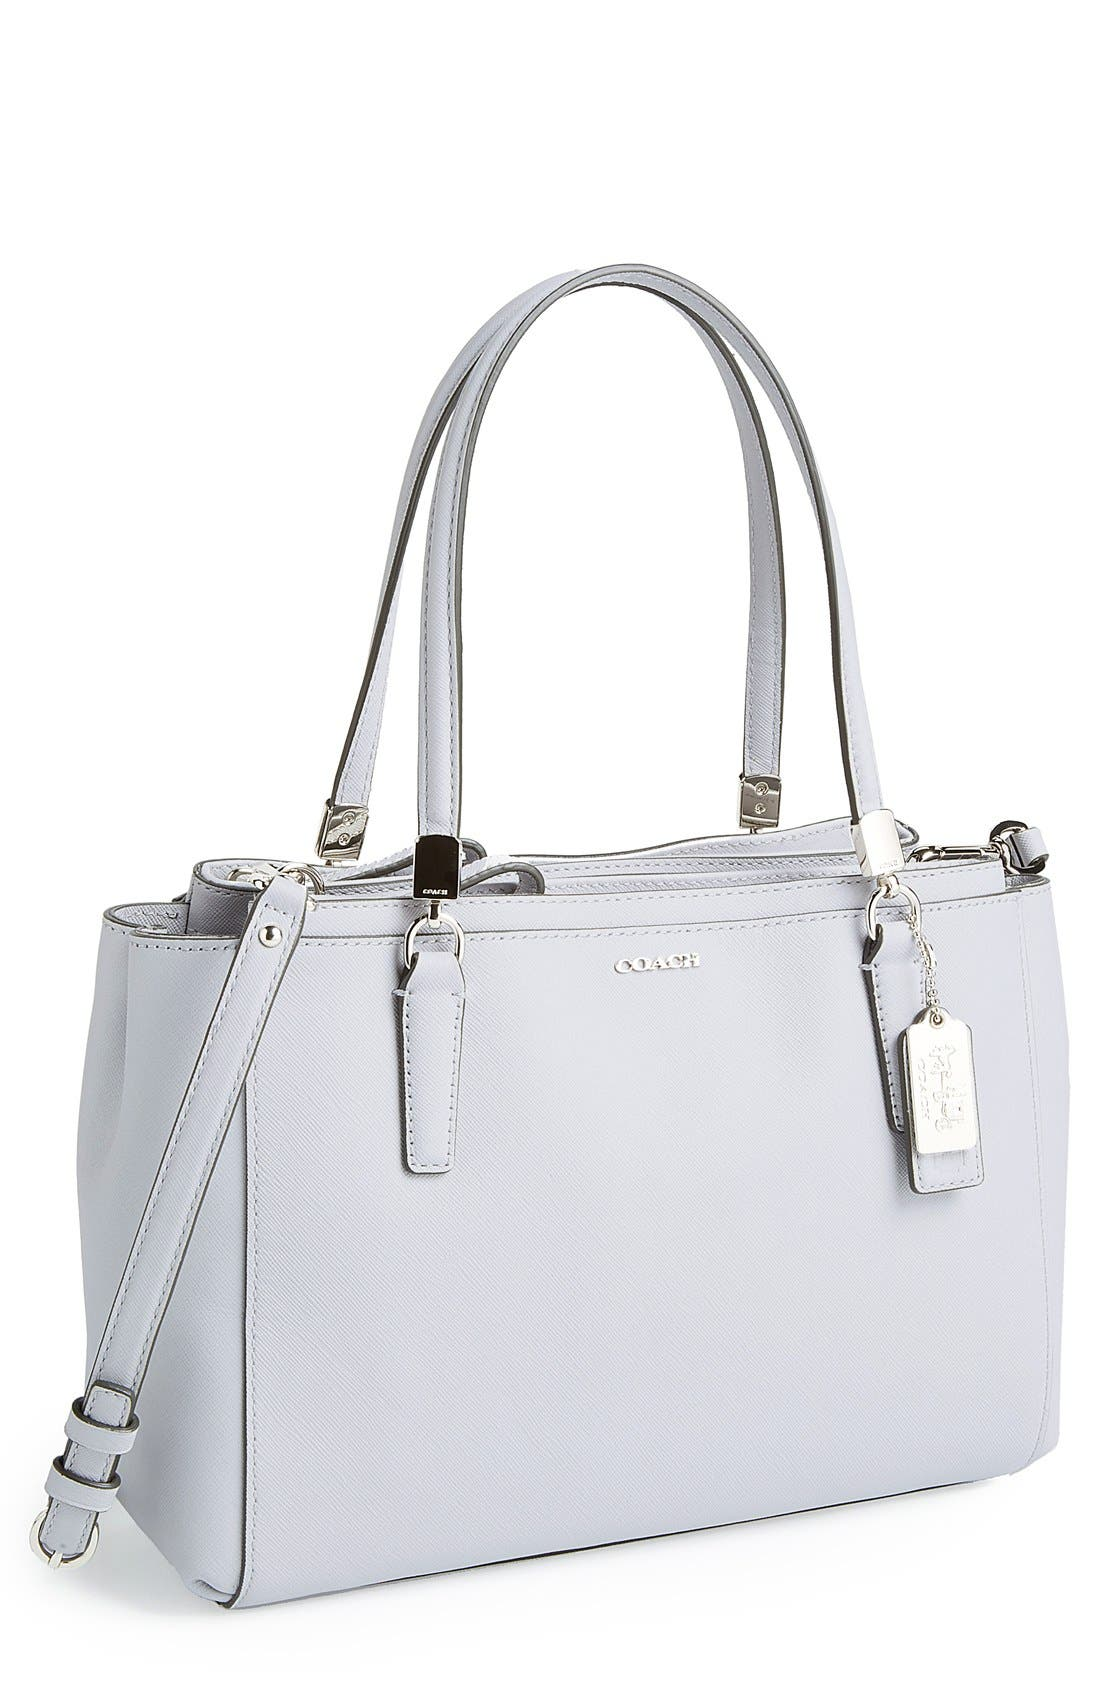 Alternate Image 1 Selected - COACH 'Madison - Small Christie' Saffiano Leather Satchel